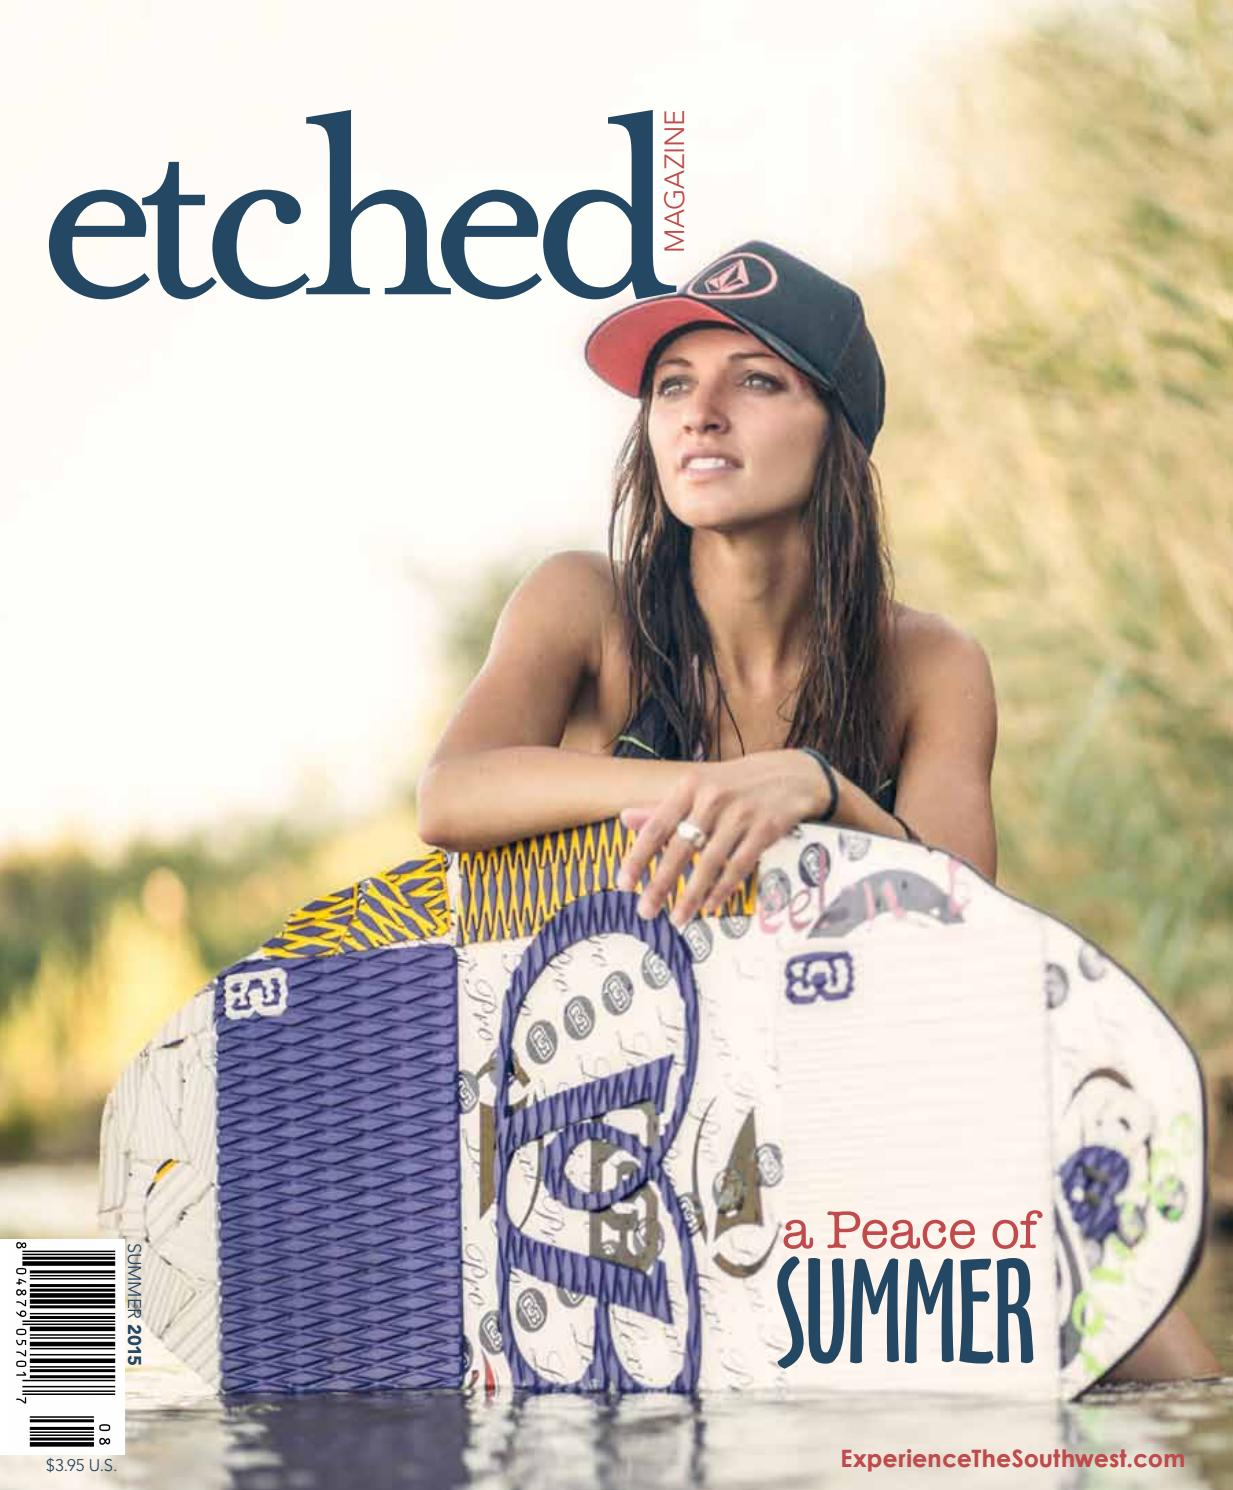 d0d1822a5f4da3 Etched Magazine Summer Issue - July August 2015 by Etched Magazine ...